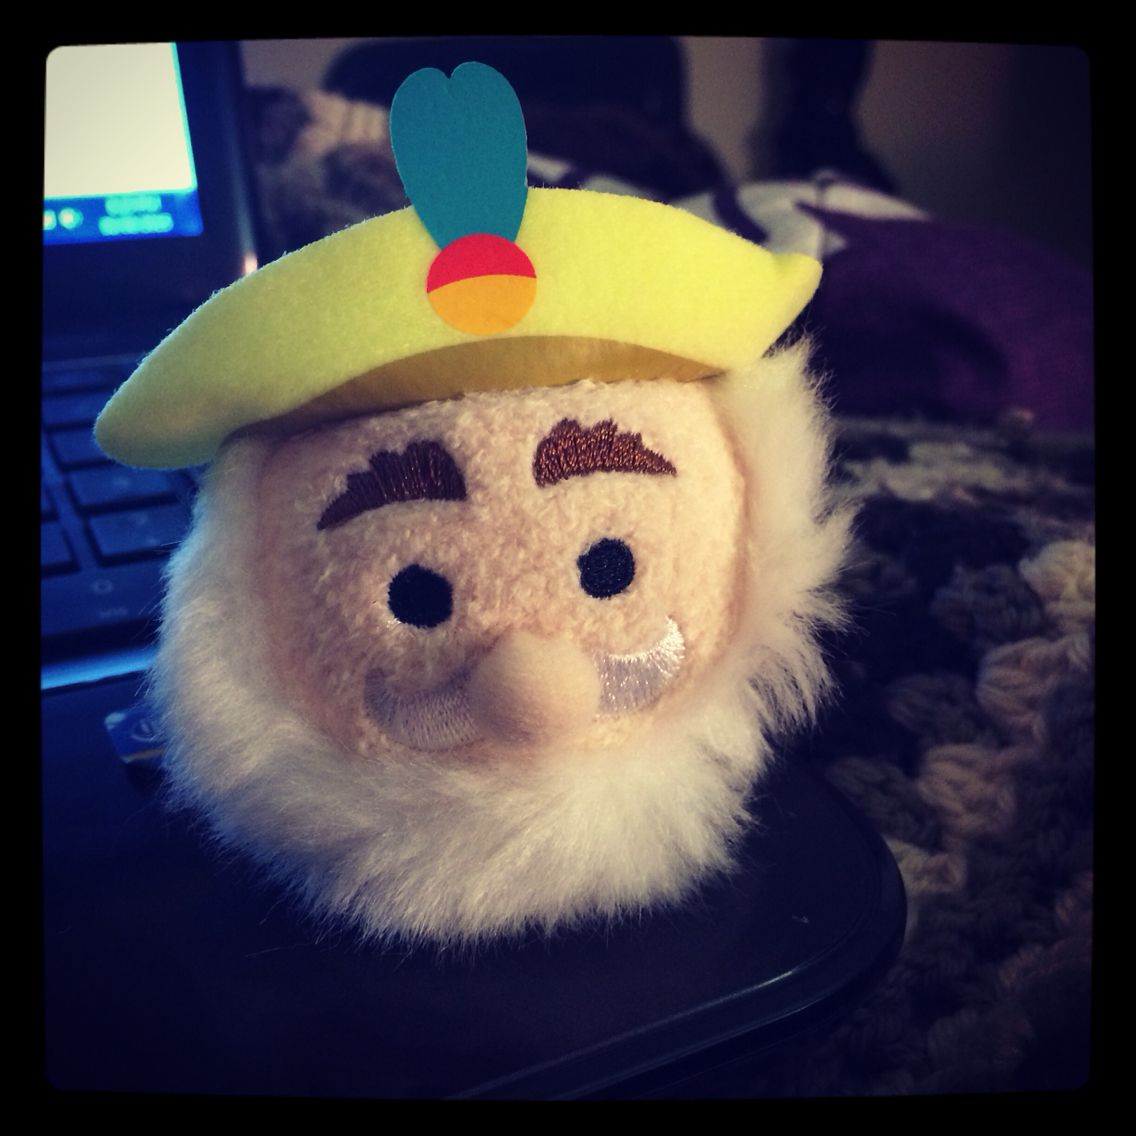 The sultan tsum tsum the aladdin collection tsum tsums i have